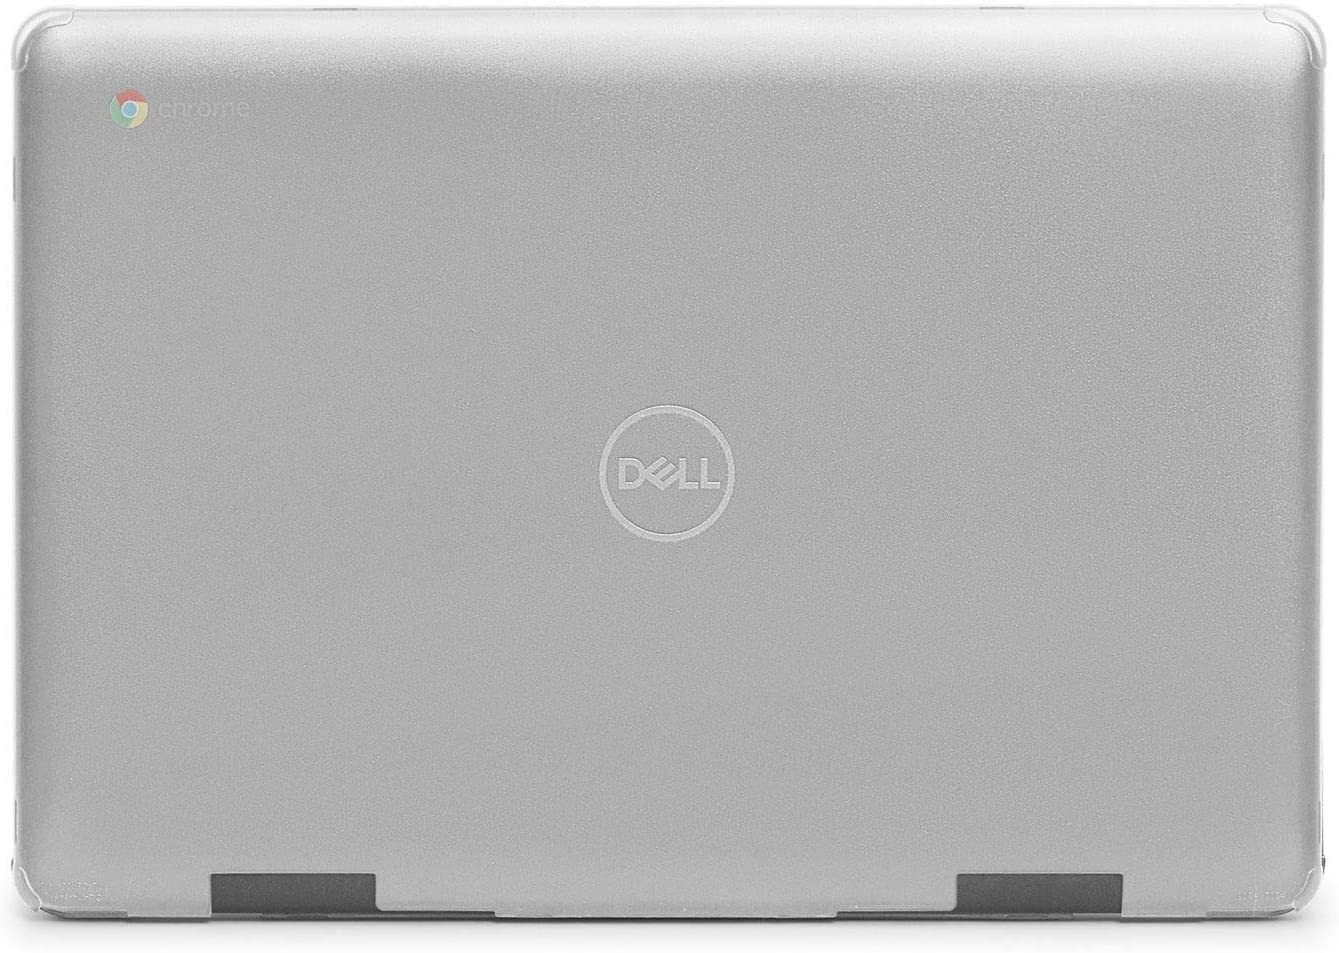 mCover Hard Shell Case for 2020 14-inch Dell Latitude 5400 Chromebook / 5410 Windows Computer (NOT Compatible with Dell C11 3181/3100/7486 2in1, 3400/3120/3180/3189/5190 Series) Dell LC5400 Clear